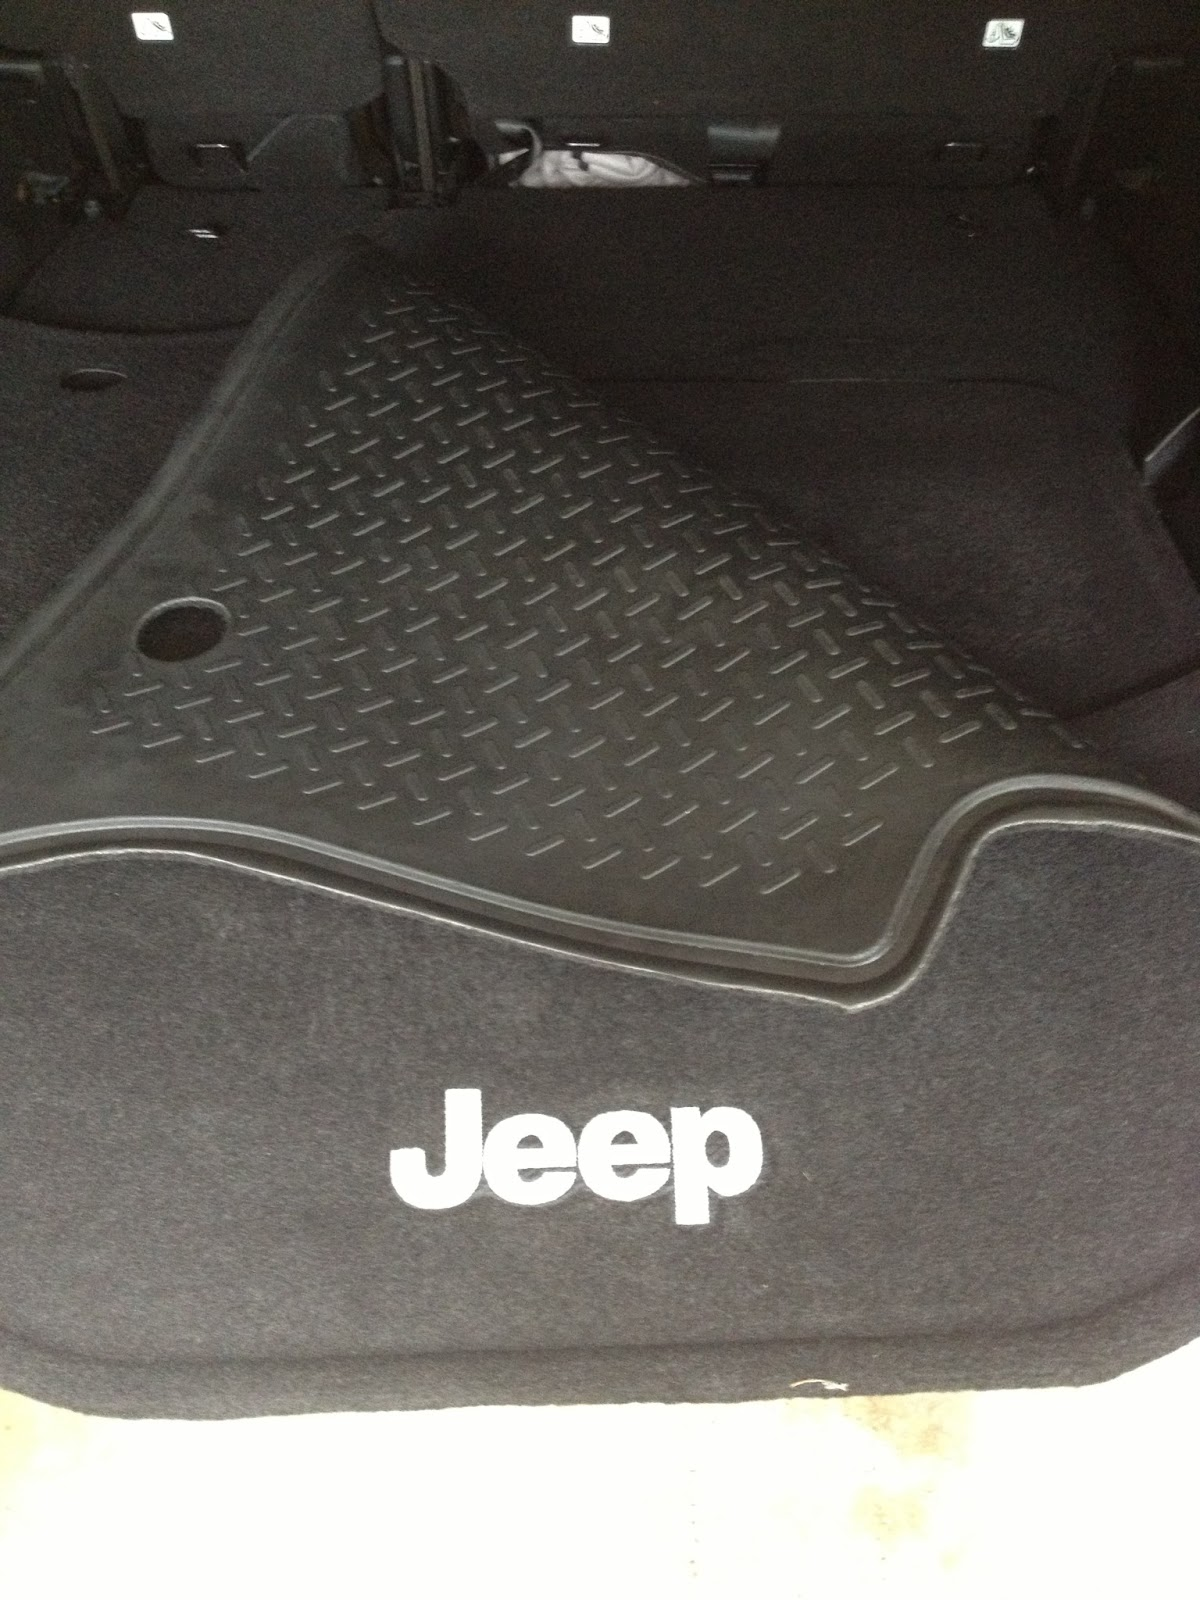 Floor mats jeep wrangler unlimited - The Jeep Wrangler Floor Liners In The Back Are Carpeted On One Side And Vinyl On The Other All You Need To Do Is Flip It Over To The Vinyl Side And Wahlah